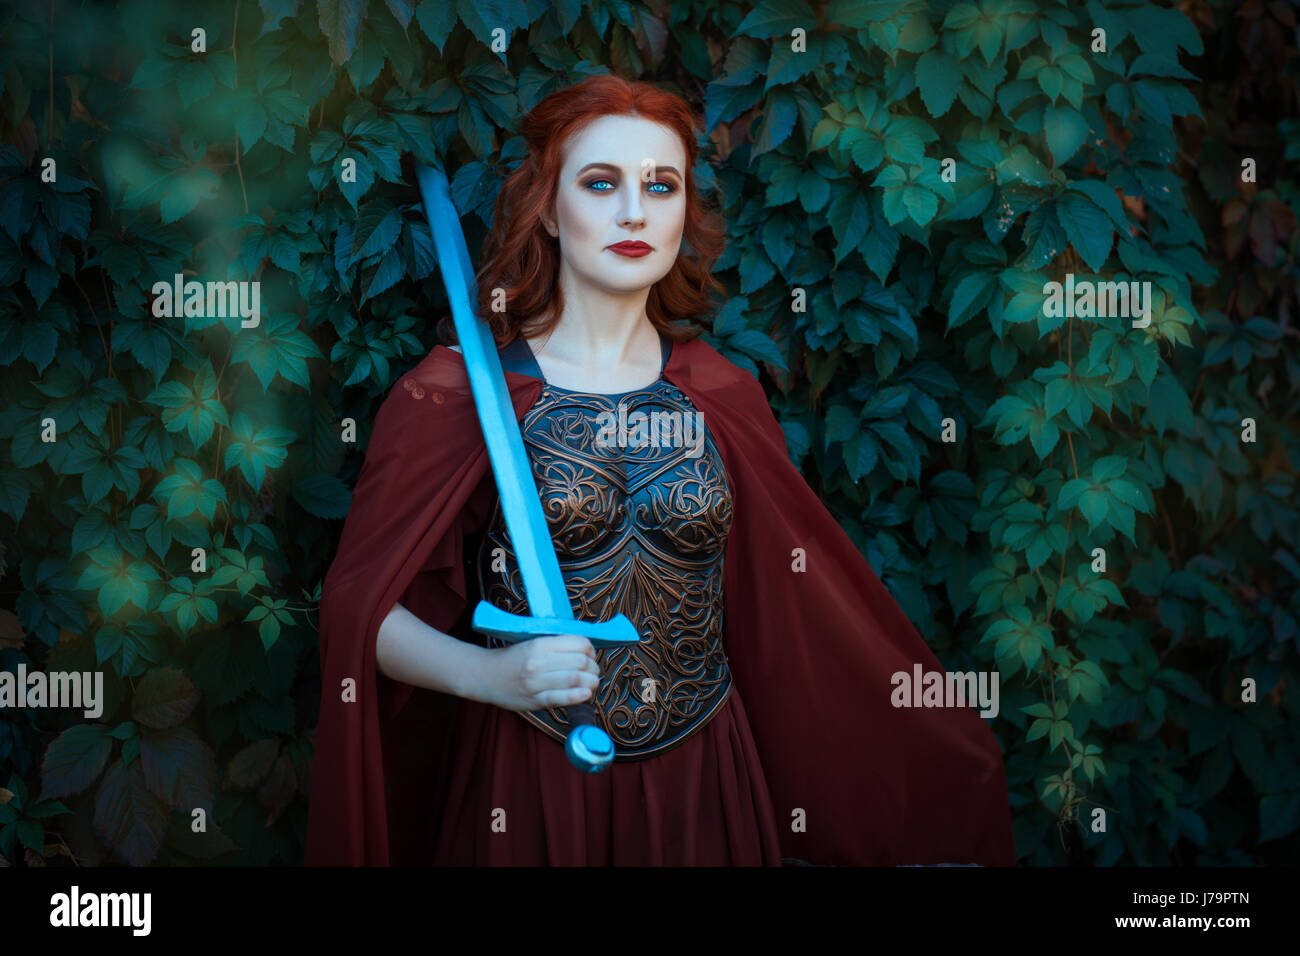 Woman warrior with sword wearing a cuirass. On the shoulders of her cloak. Stock Photo